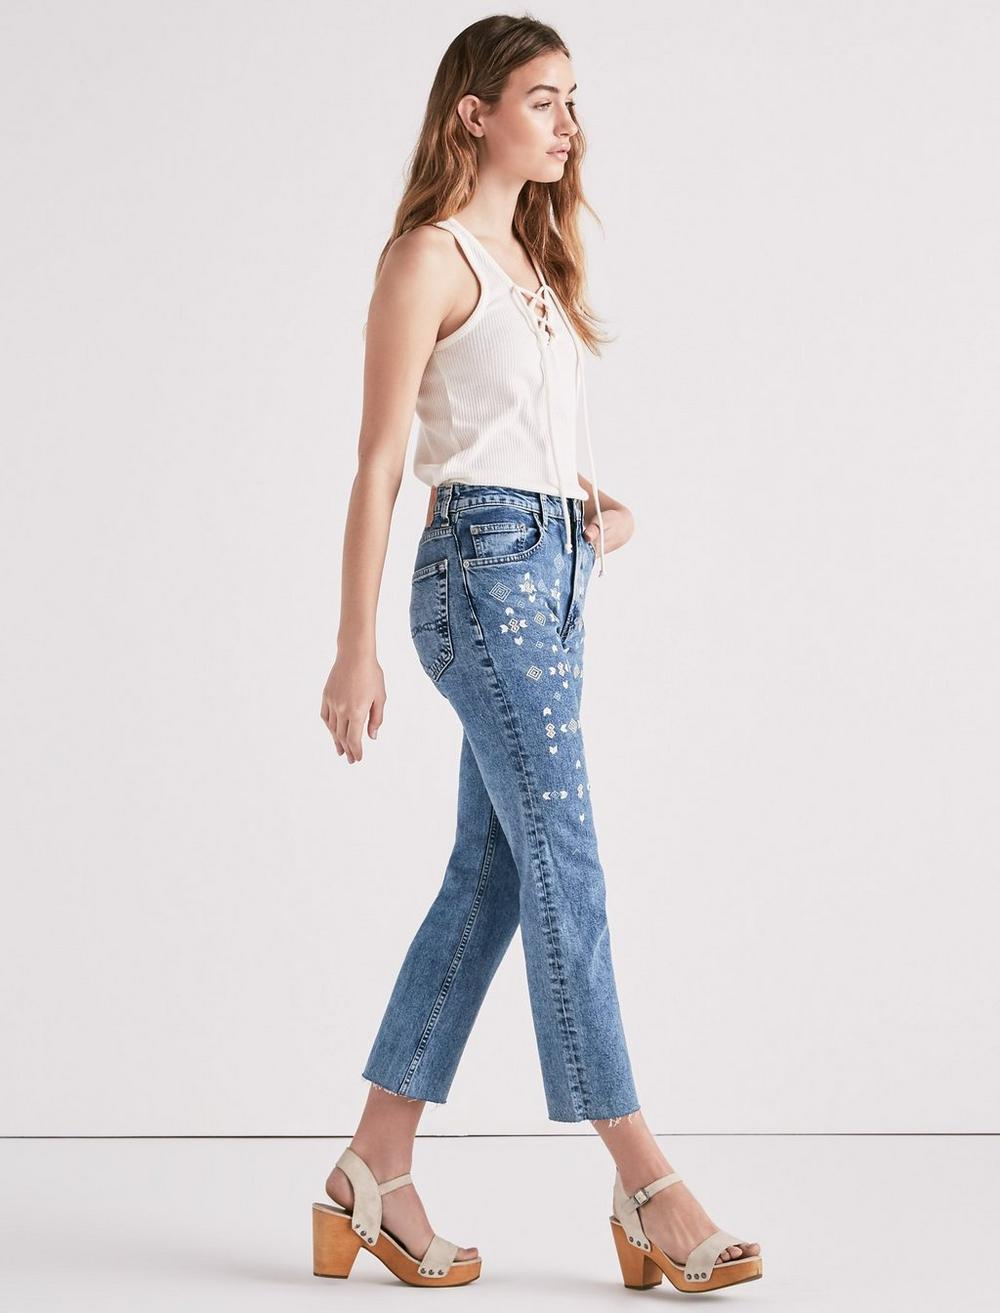 LUCKY PINS HIGH RISE CROPPED JEAN WITH EMBROIDERY, image 1